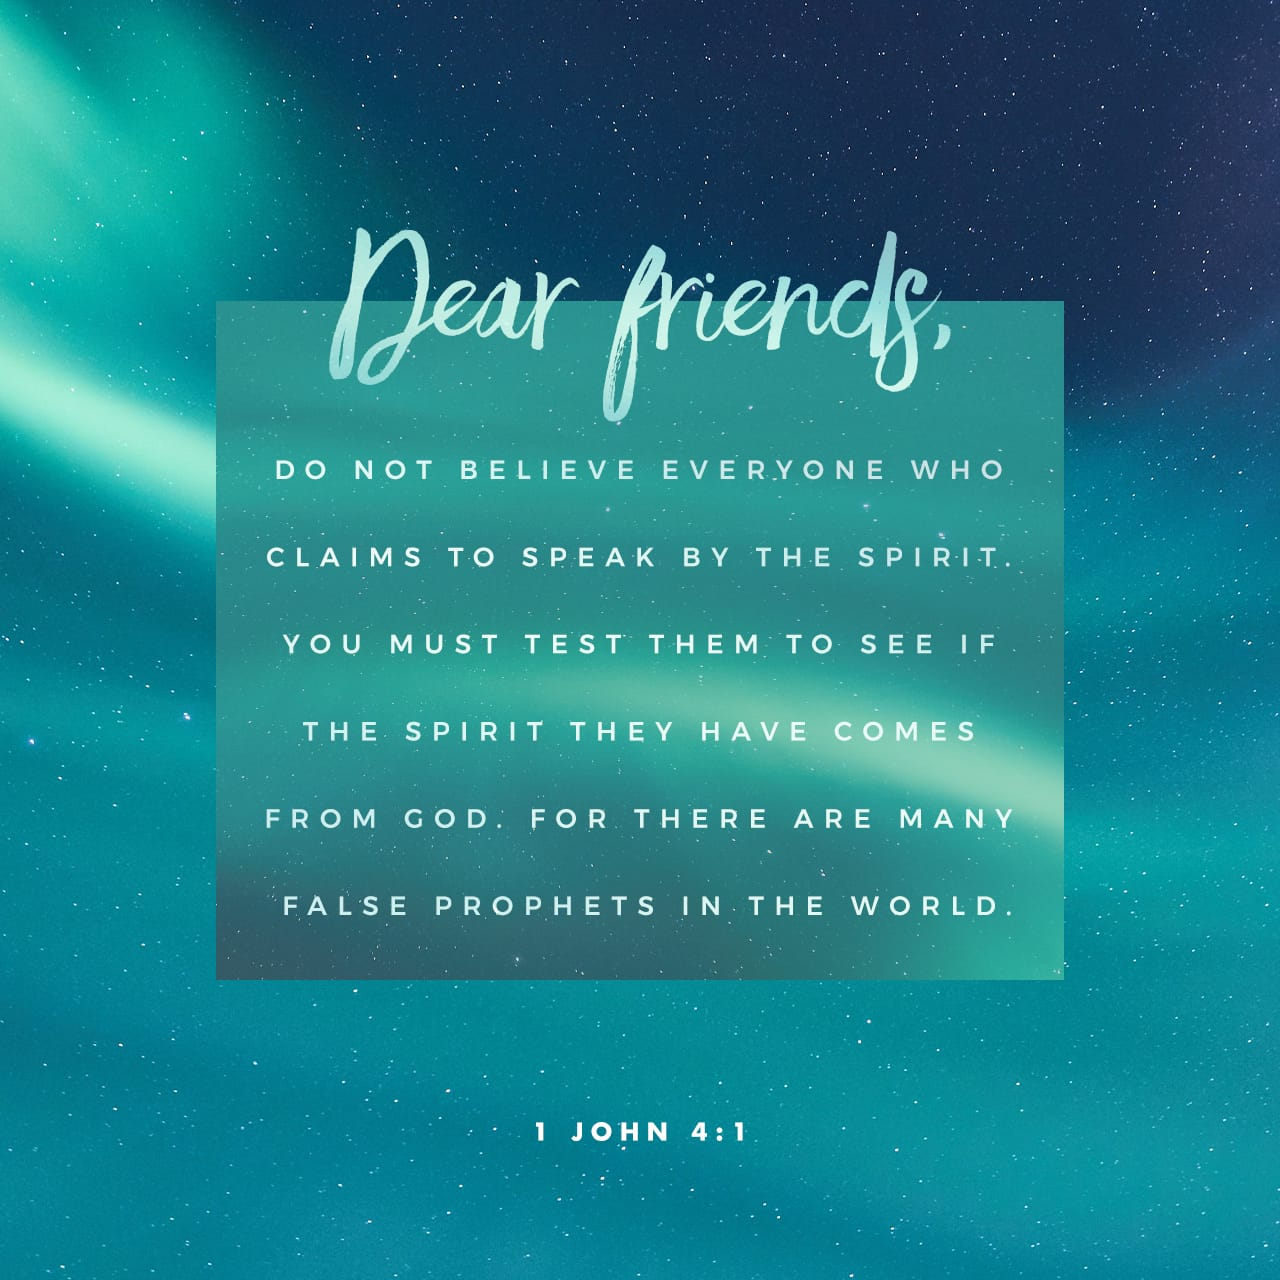 1 John 4:1 Beloved, believe not every spirit, but try the spirits whether they are of God: because many false prophets are gone out into the world. | King James Version (KJV)